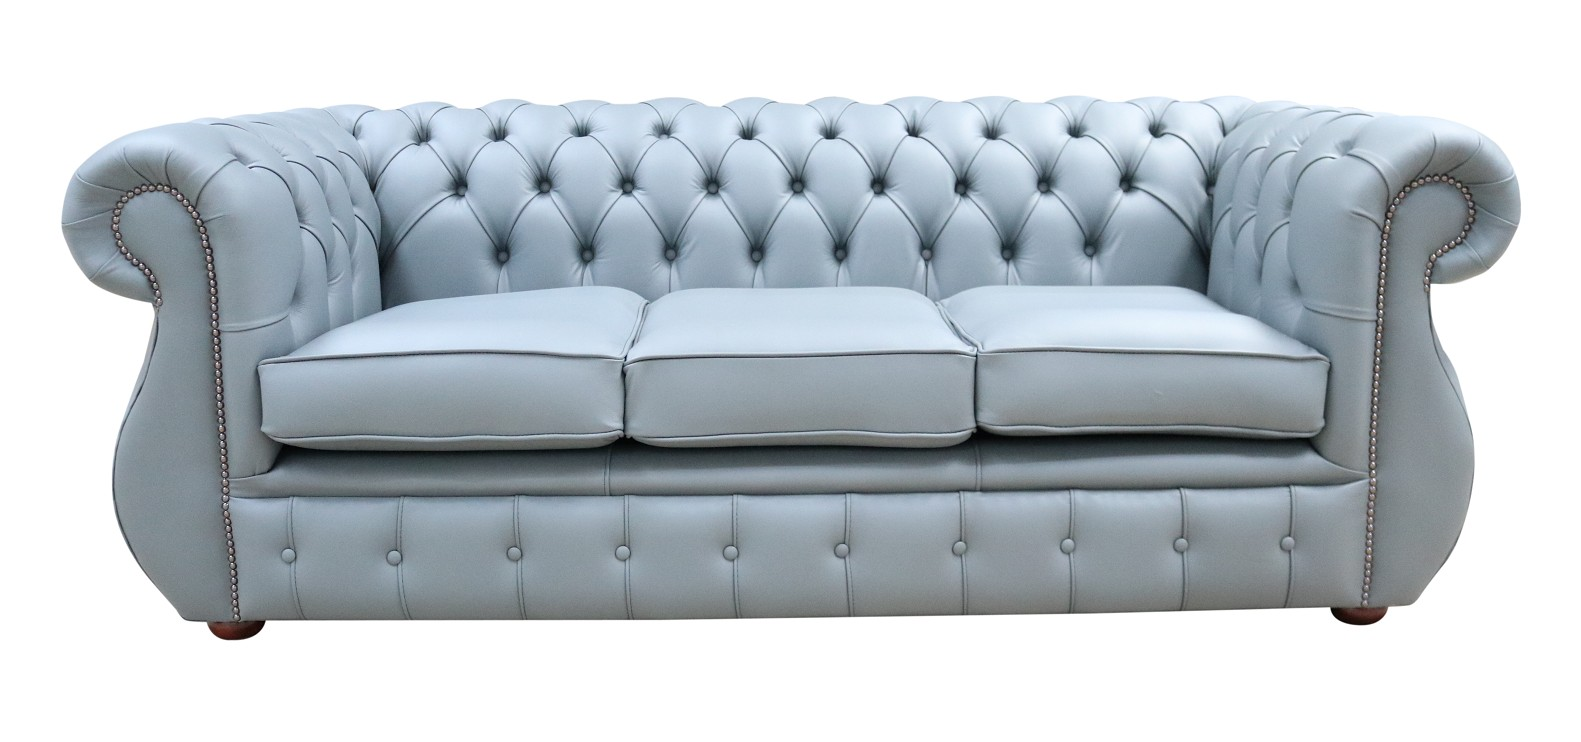 Details about Chesterfield Original Kimberley 3 Seater Shelly Piping Grey Real Leather Sofa